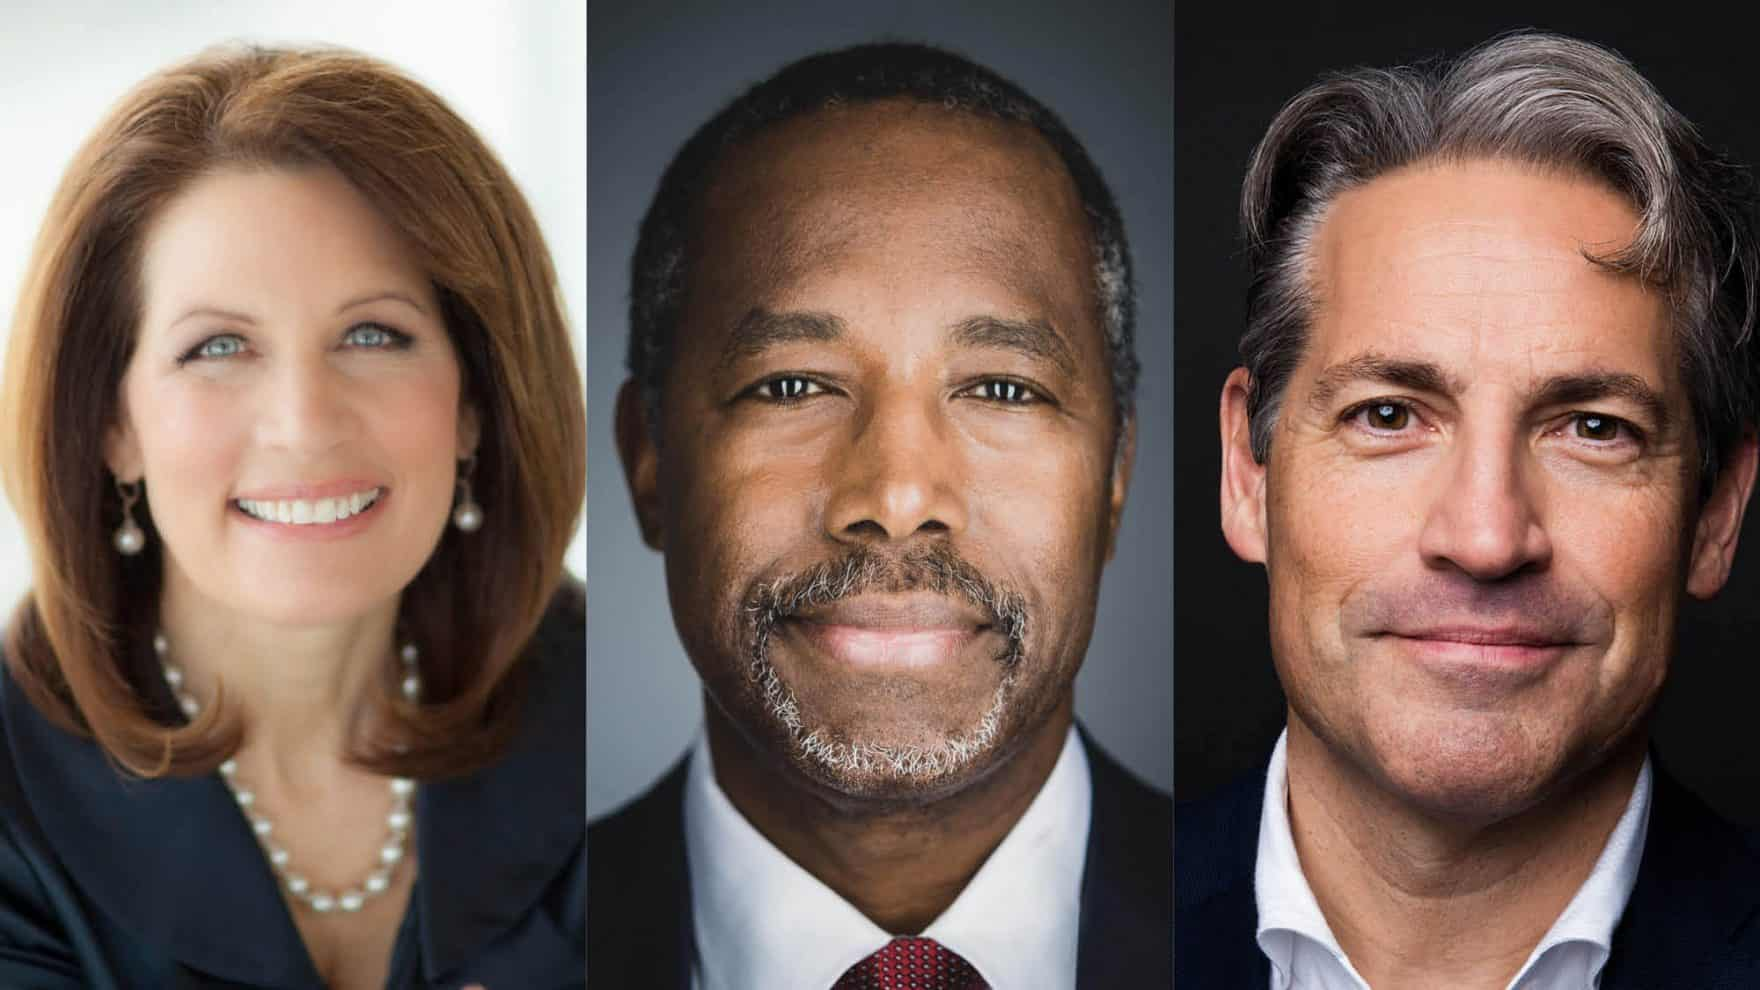 Regent University on Election Integrity with Ben Carson and Eric Metaxas